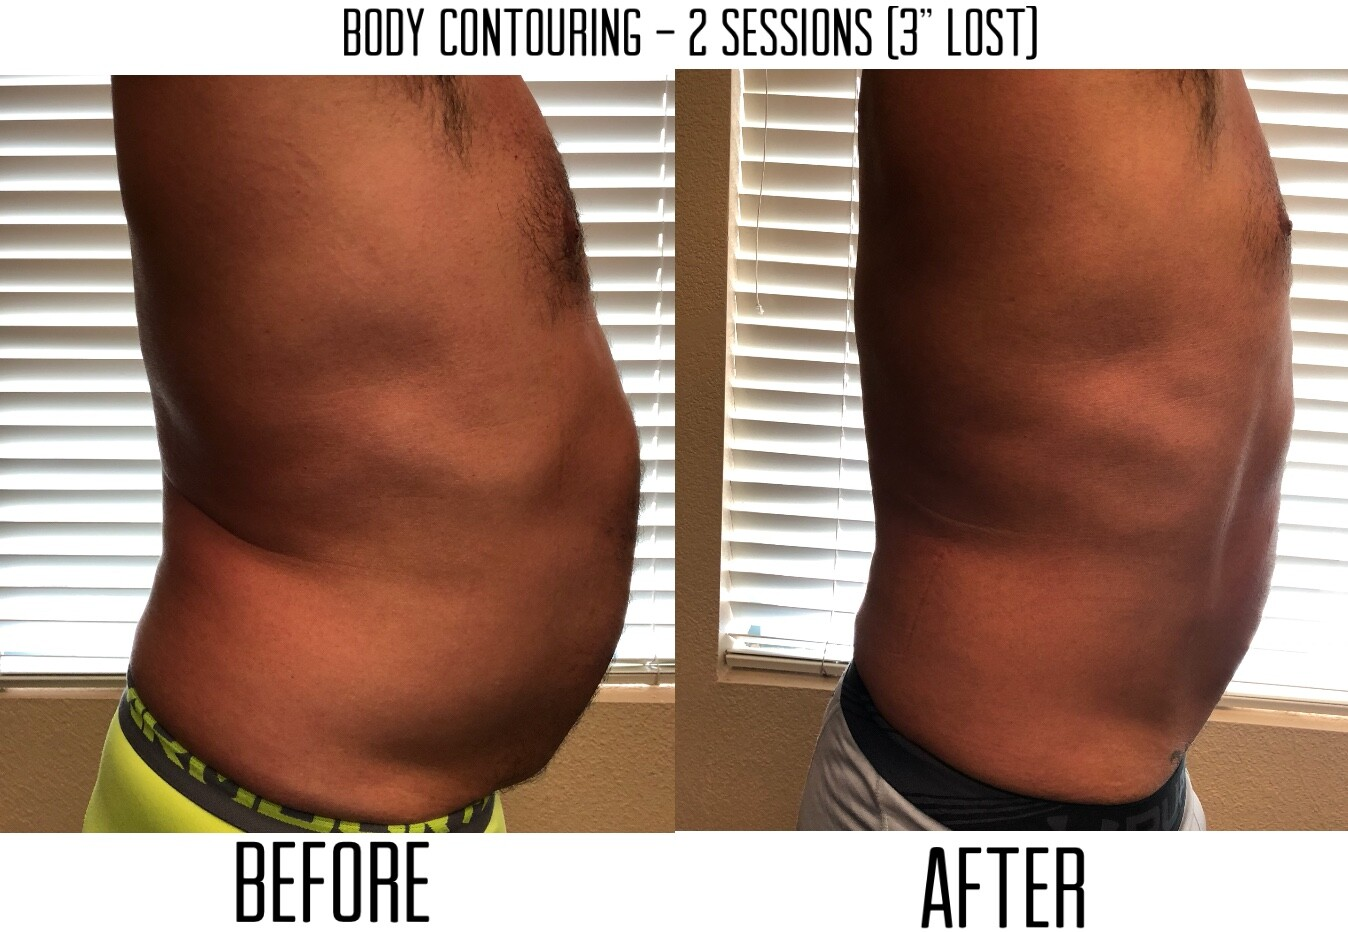 mens body contouring in Las Vegas Nevada before and after